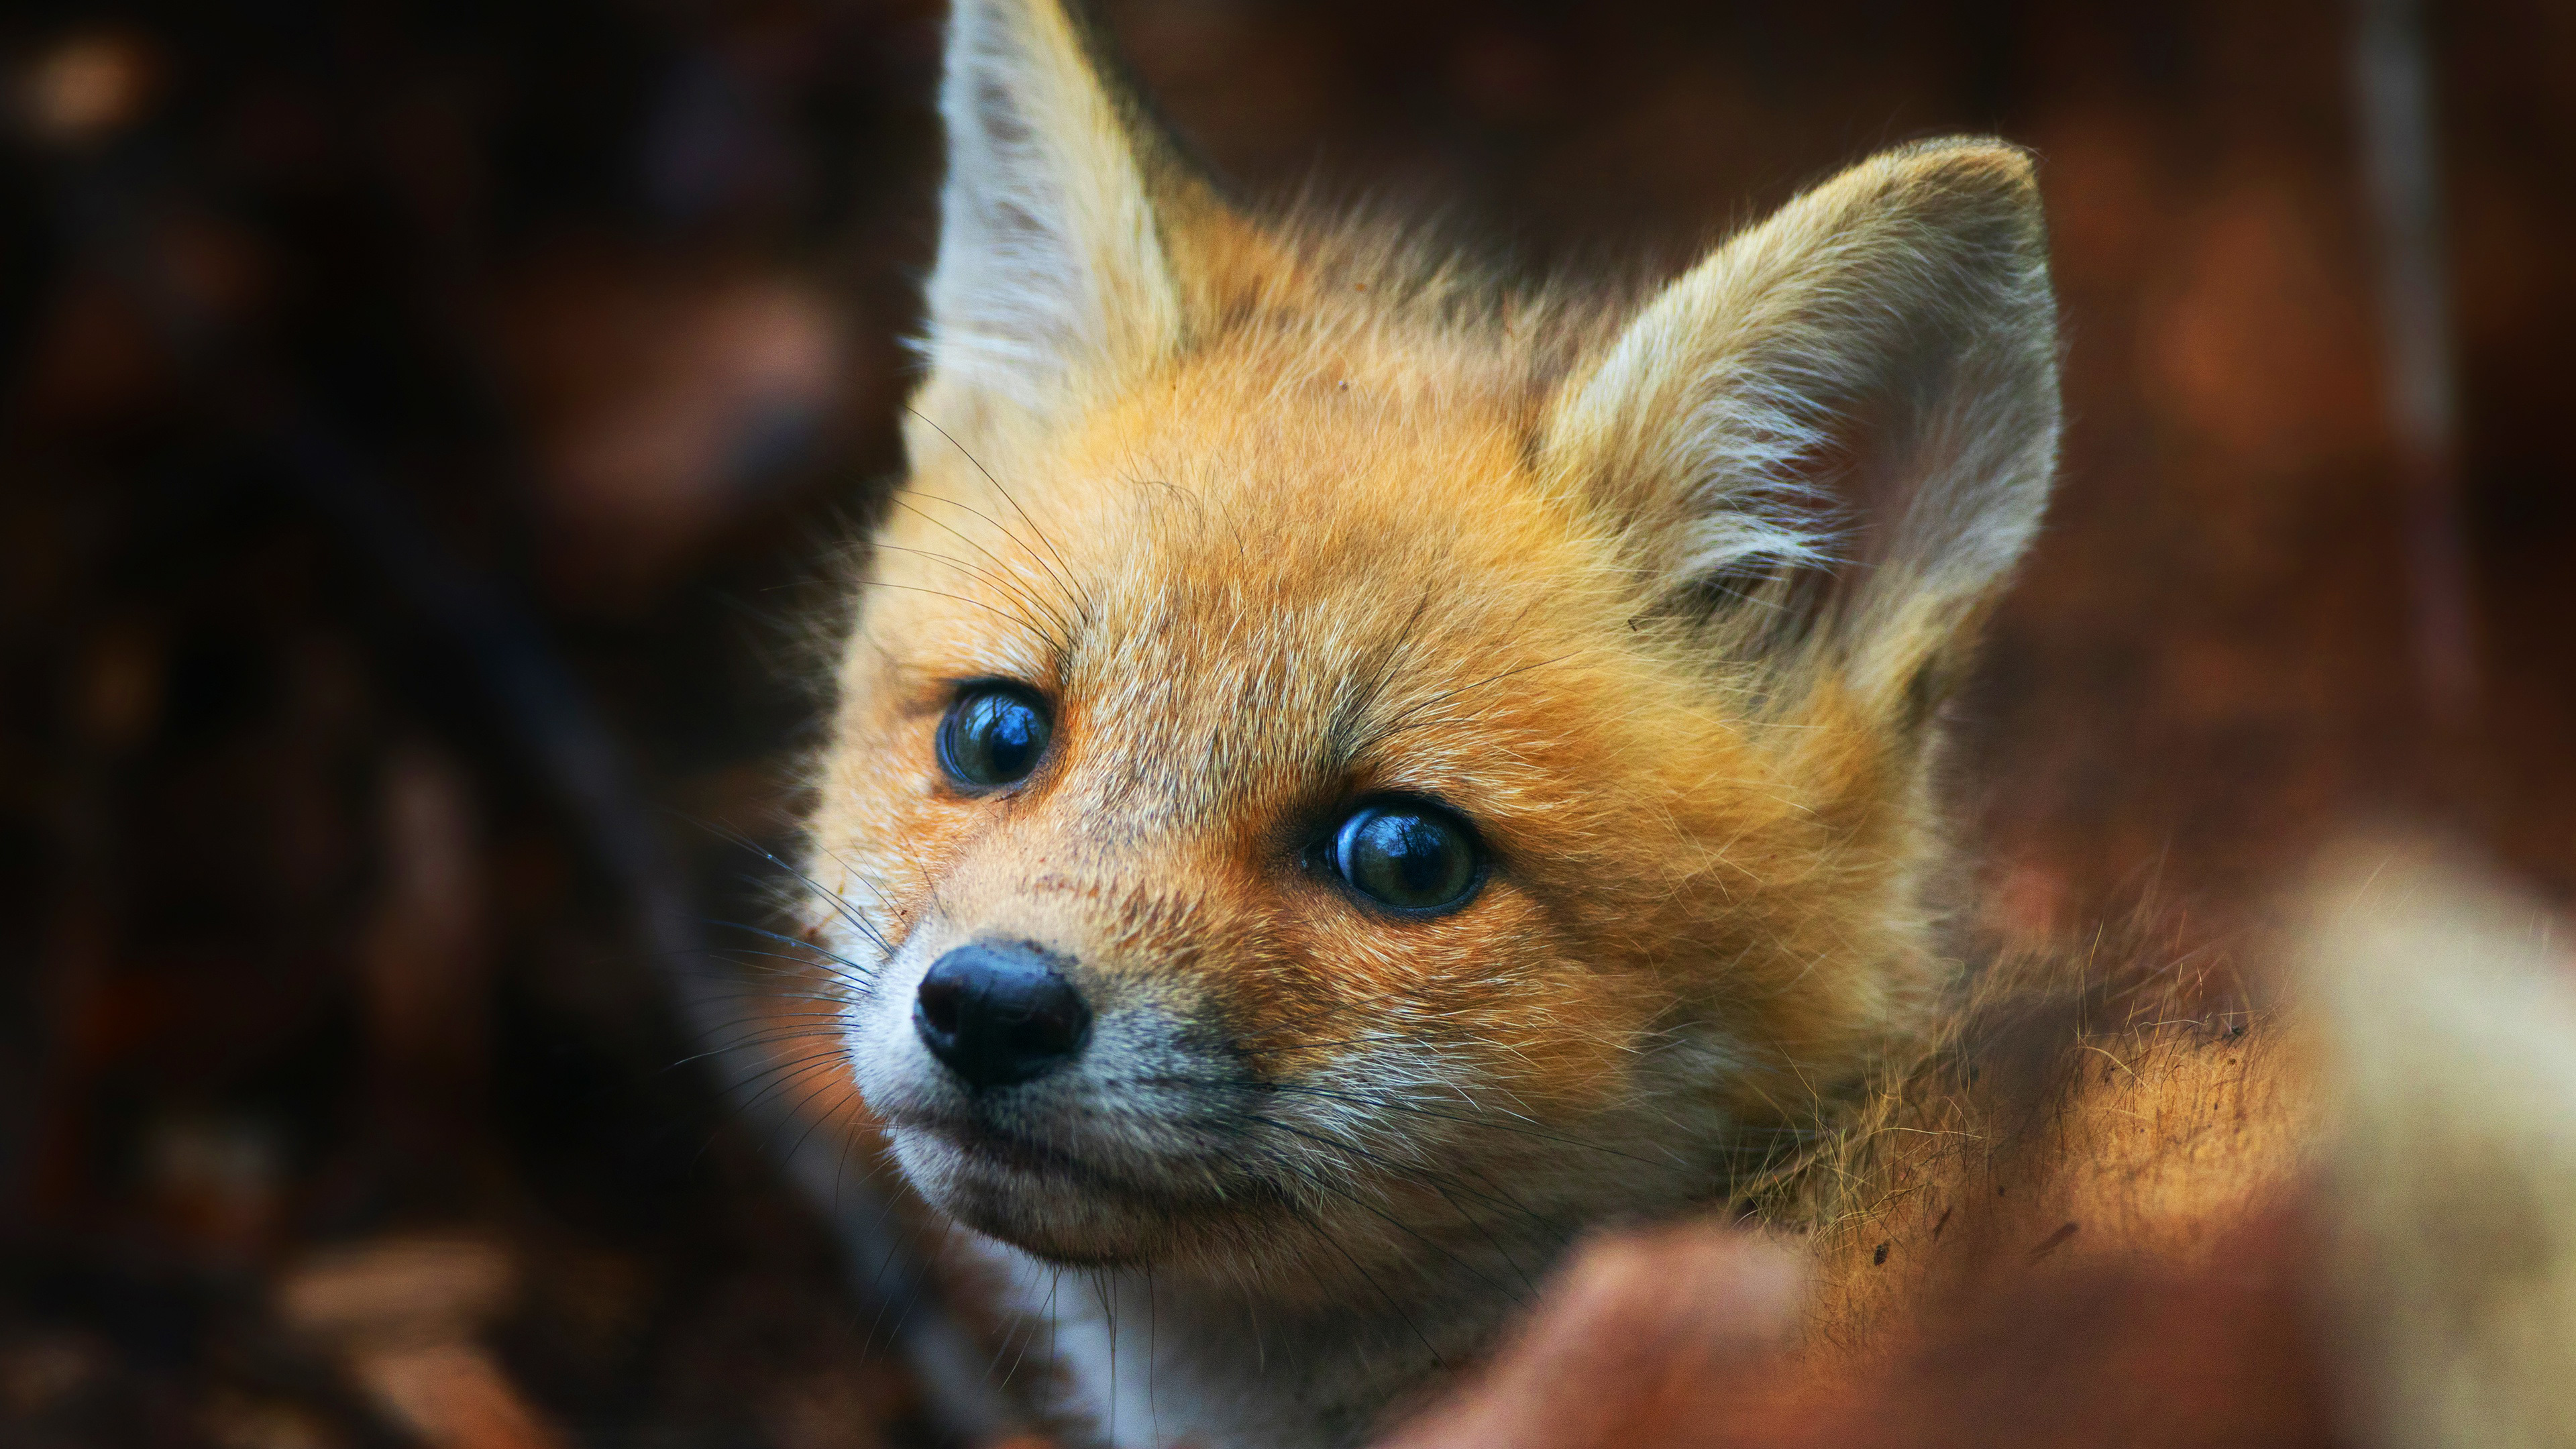 cute fox cub 4k 1542239619 - Cute Fox Cub 4k - hd-wallpapers, fox wallpapers, cub wallpapers, animals wallpapers, 4k-wallpapers